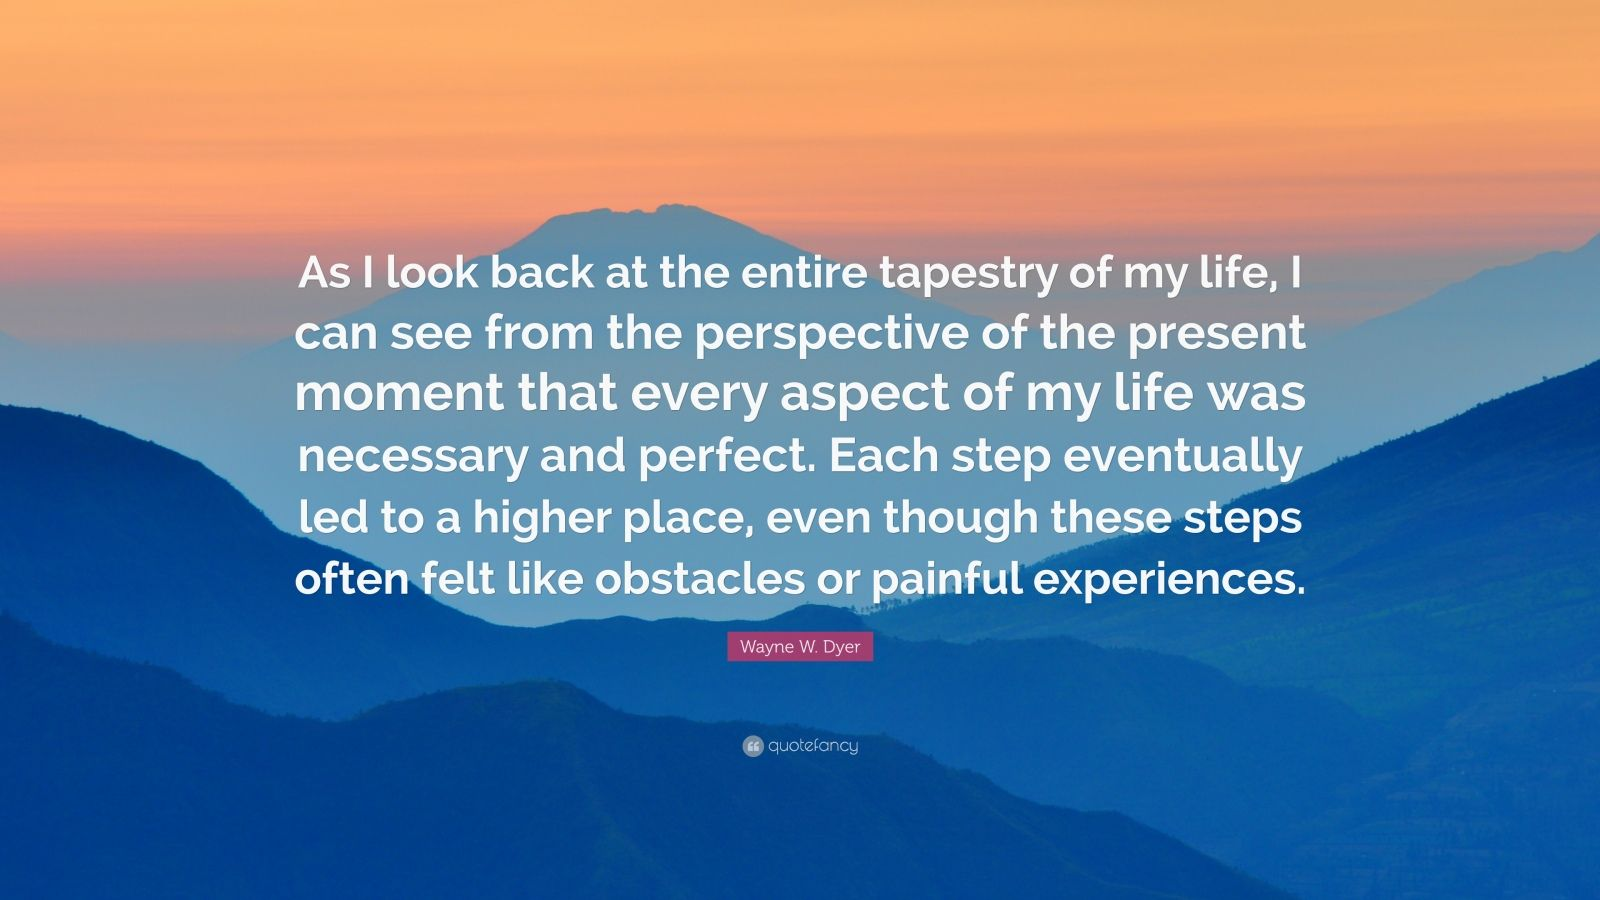 """Wayne W. Dyer Quote: """"As I look back at the entire tapestry of my life, I can see from the perspective of the present moment that every aspect of my life was necessary and perfect. Each step eventually led to a higher place, even though these steps often felt like obstacles or painful experiences."""""""